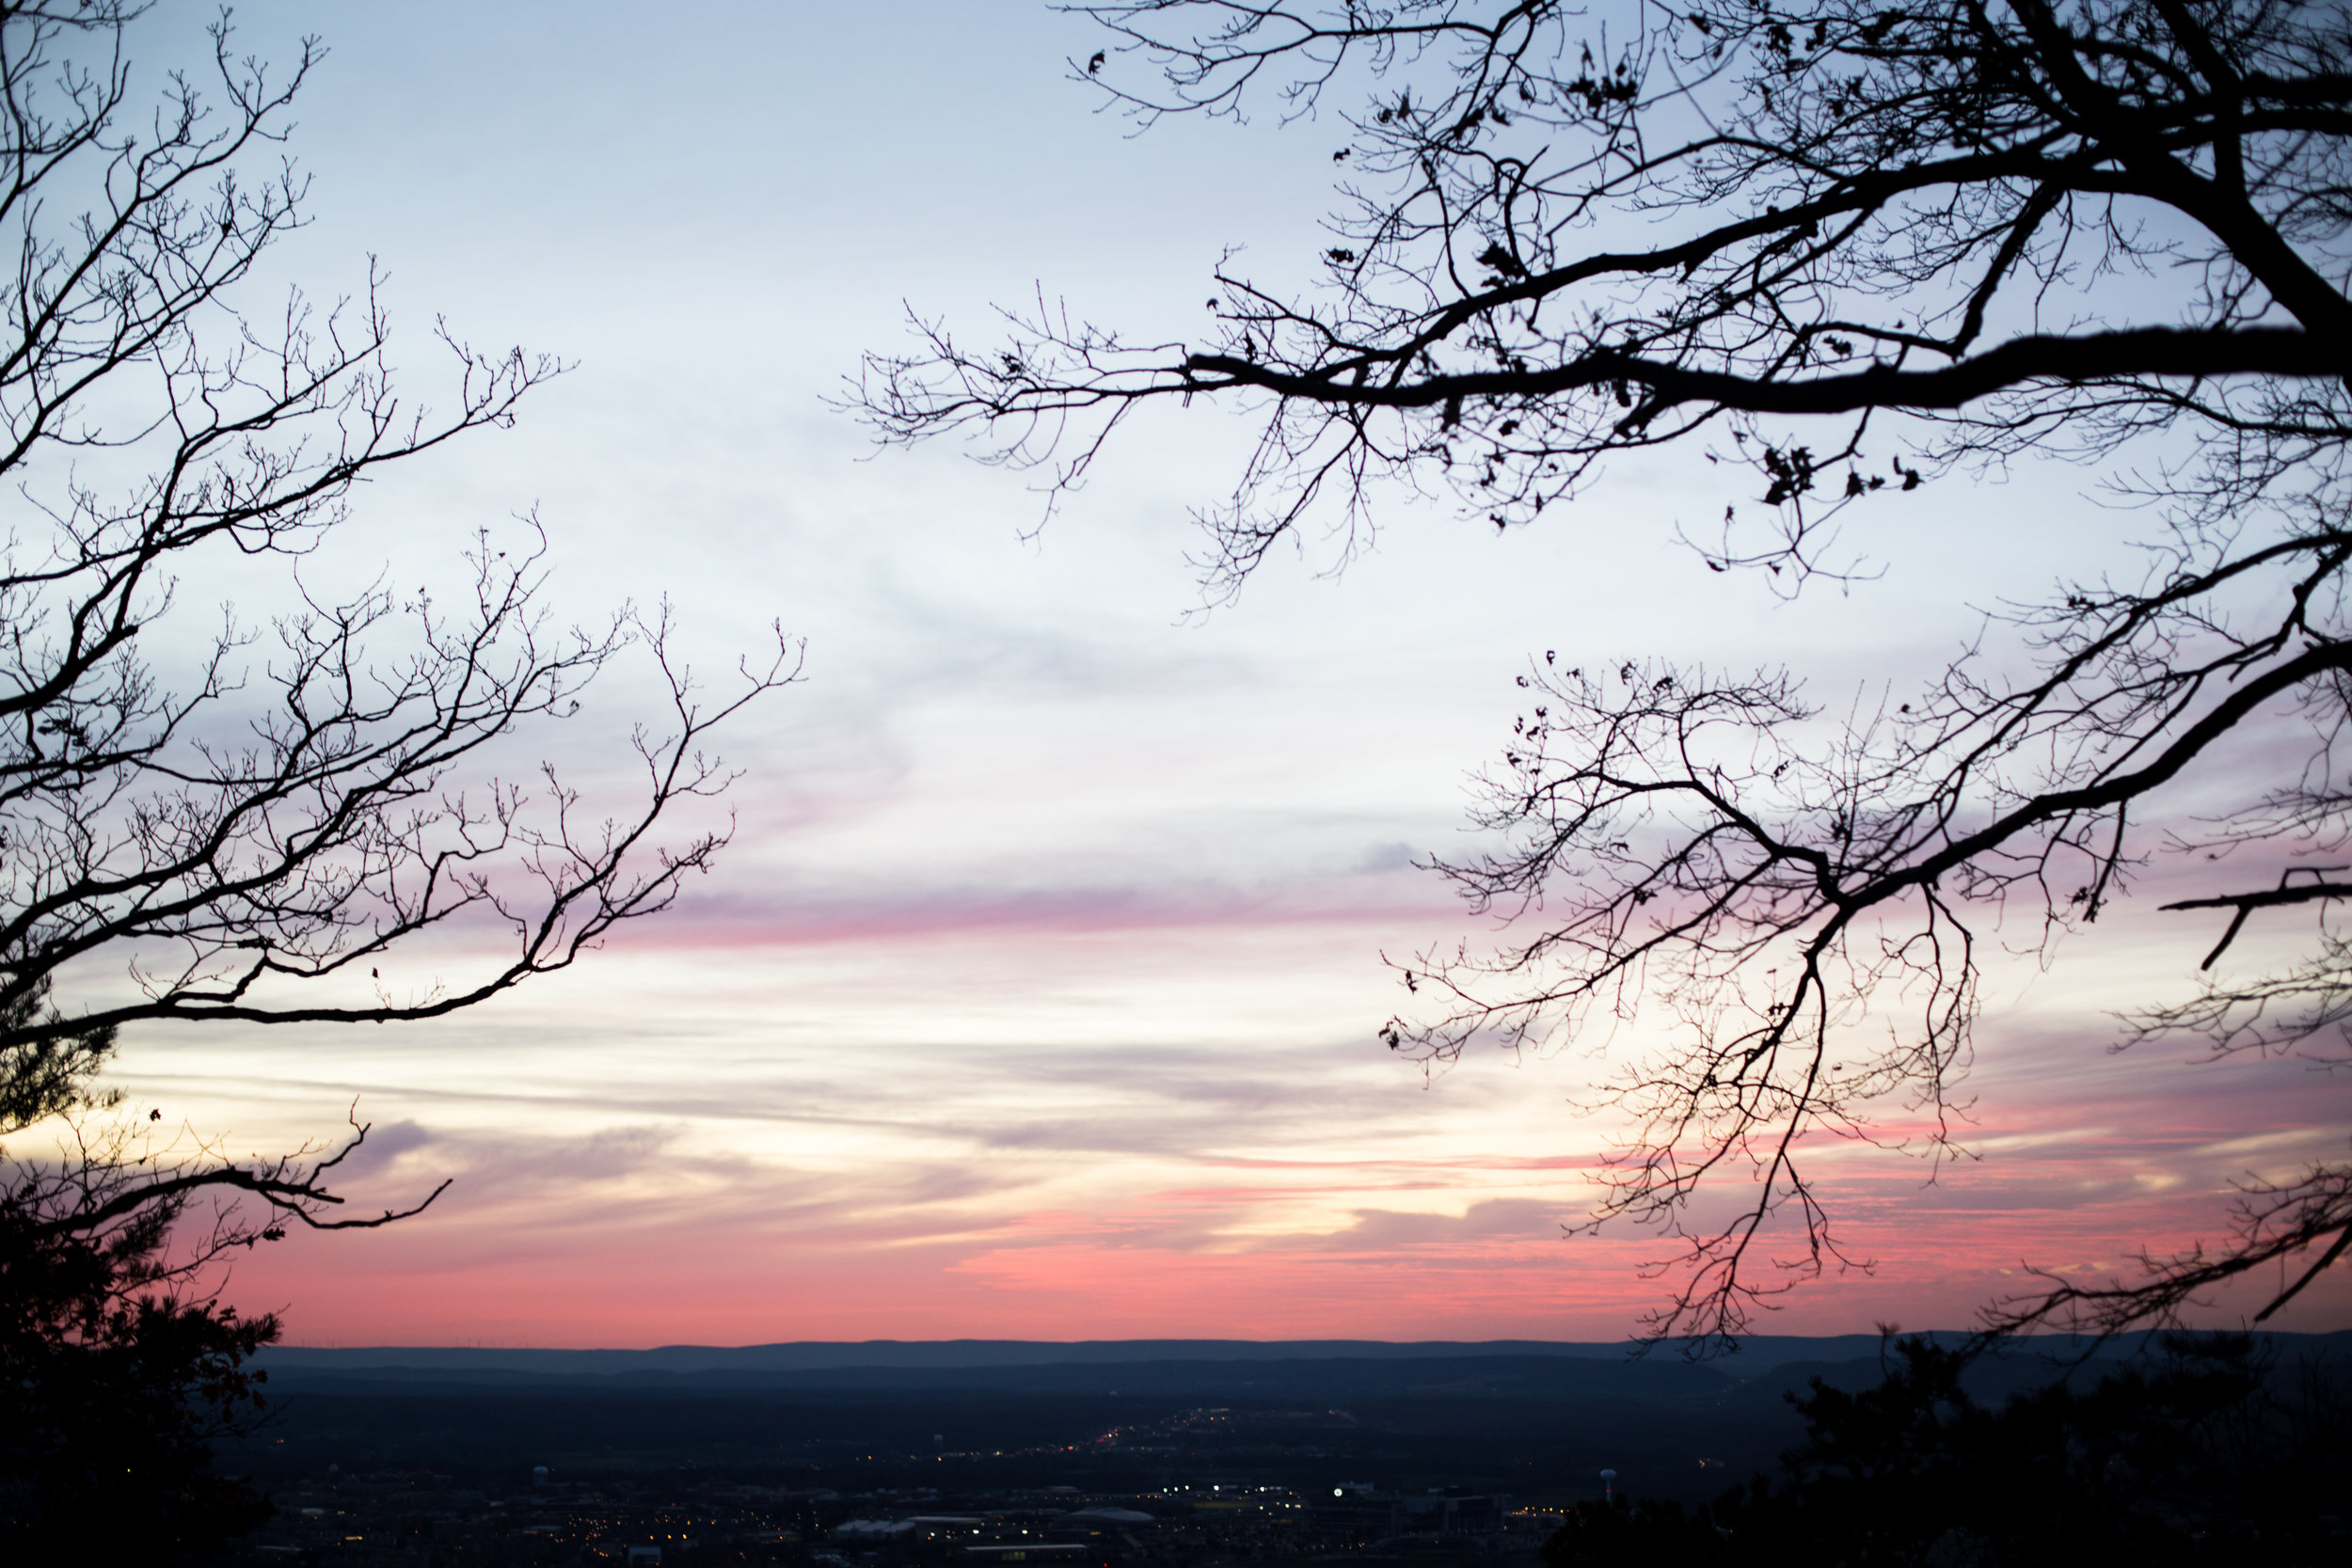 319 // 366 Sunset hike up Mount Nittany